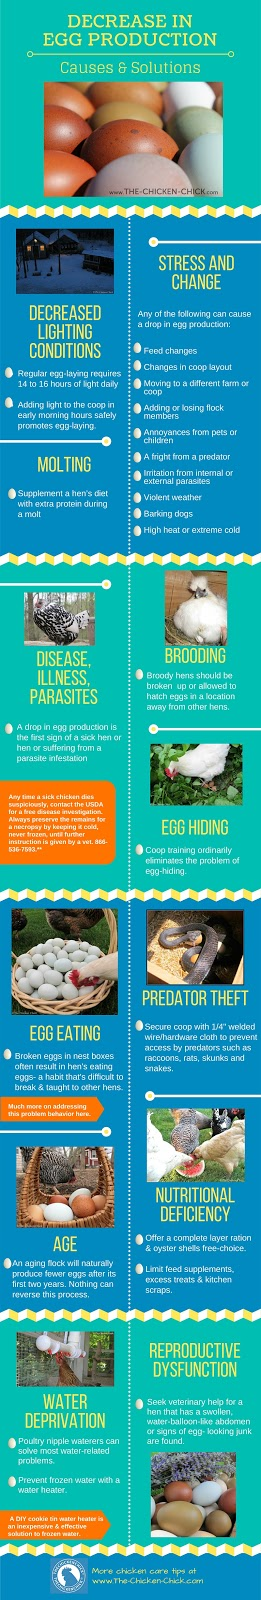 Drop in Egg Production: Causes & Solutions via The Chicken Chick®